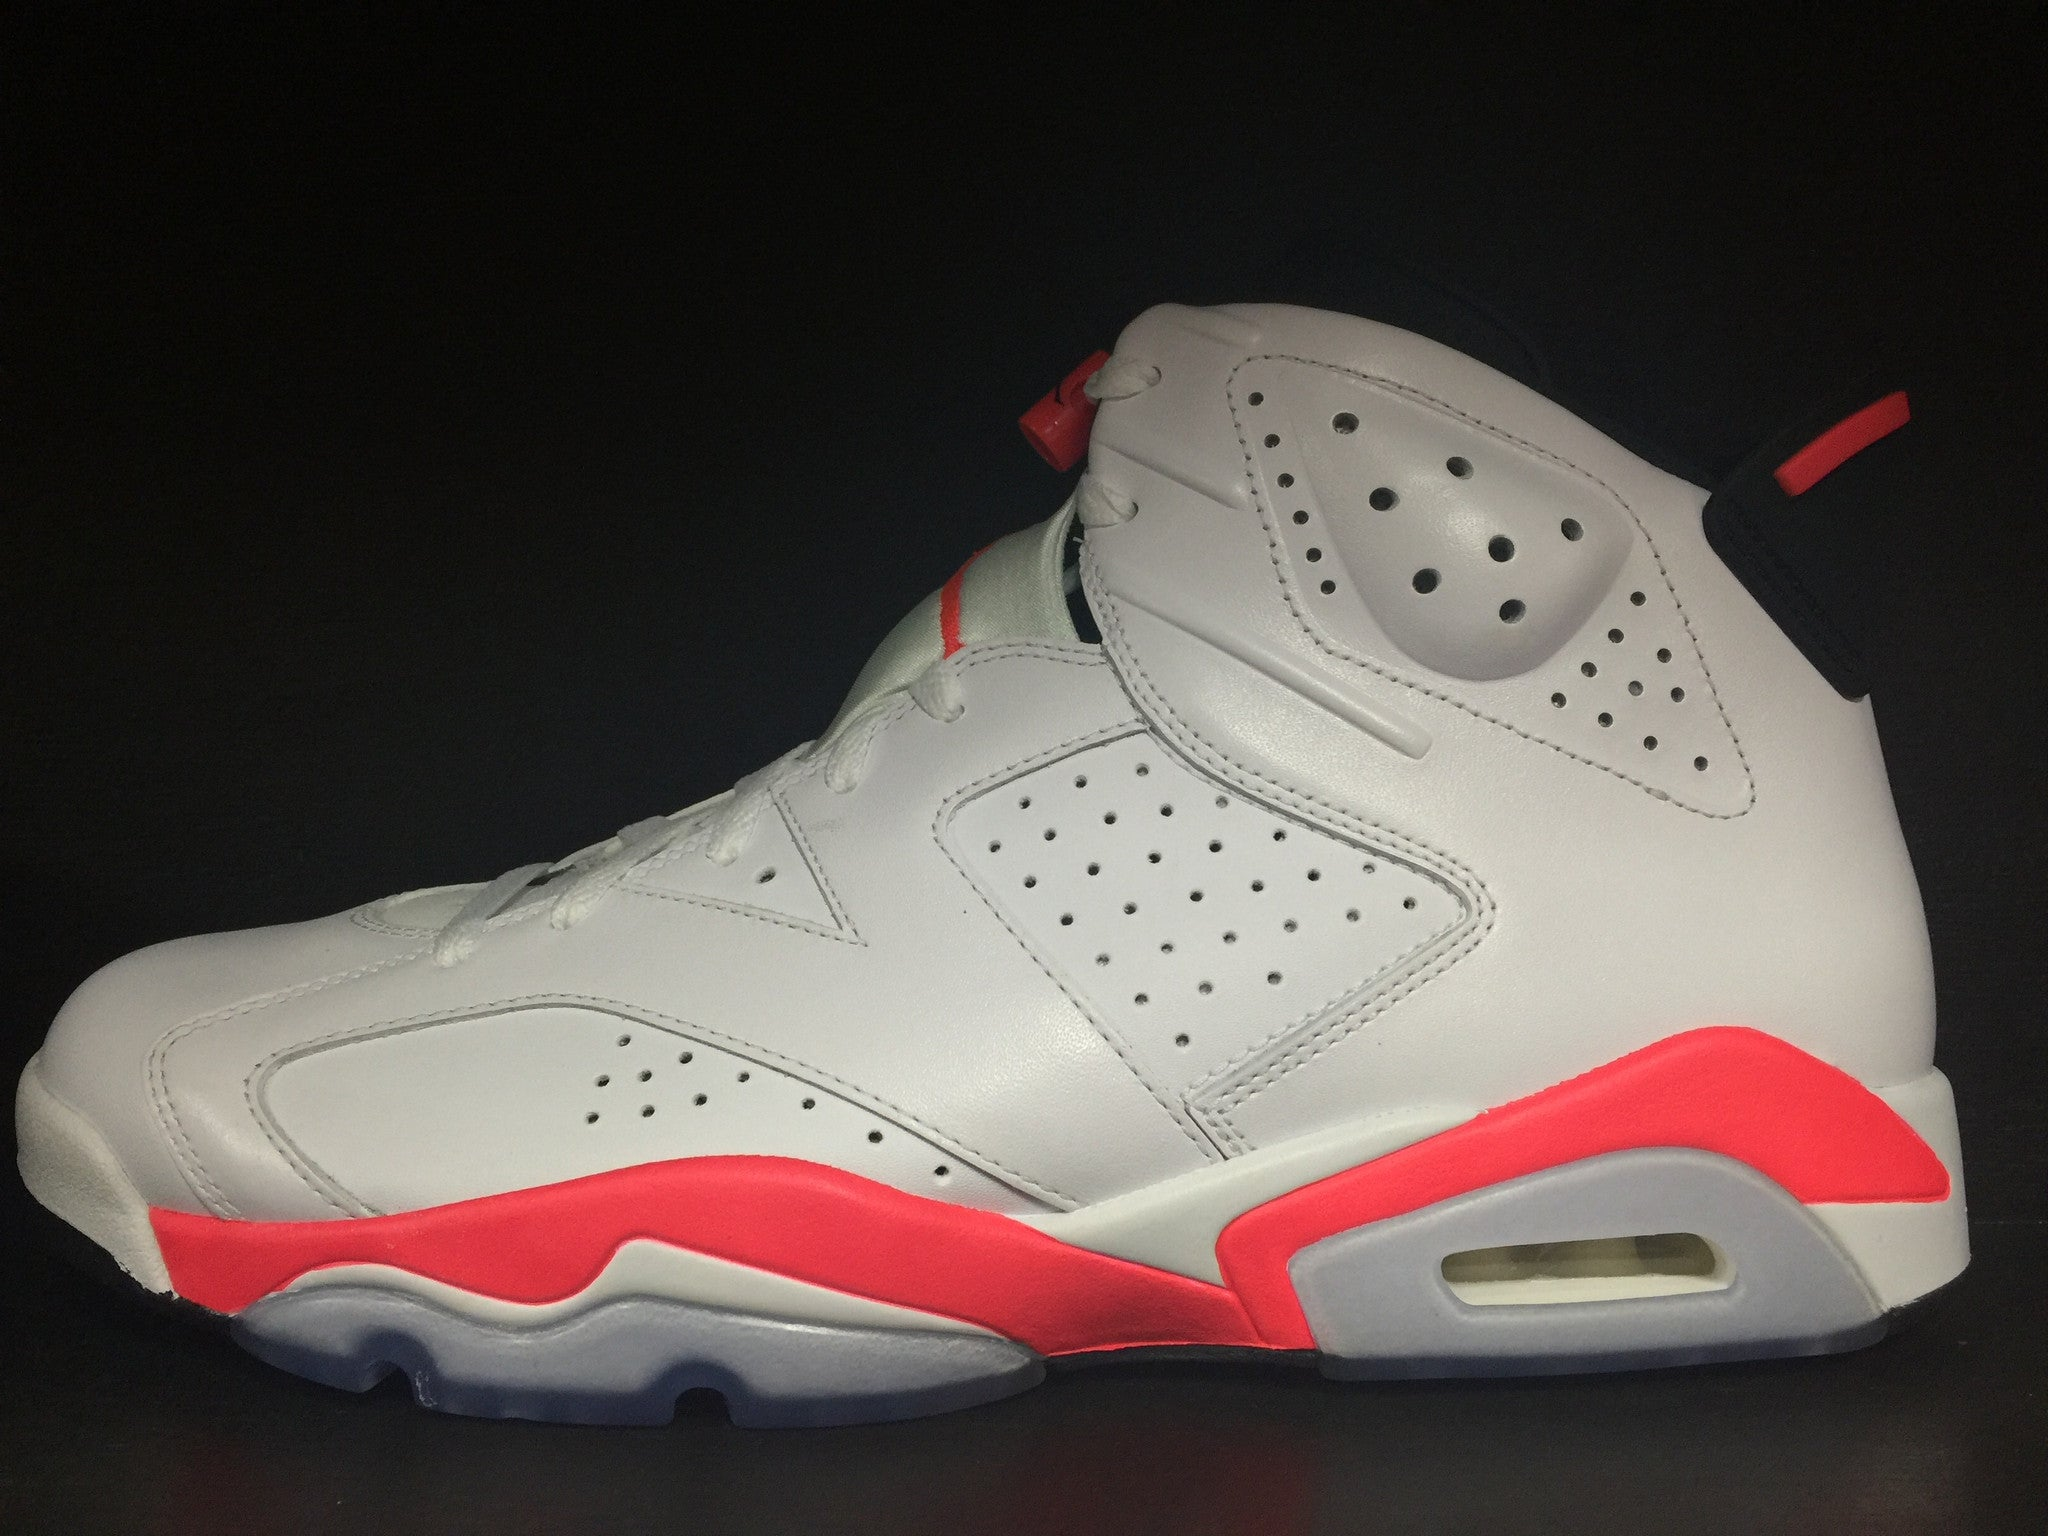 Air Jordan 6 Retro 'Infrared' 'White'